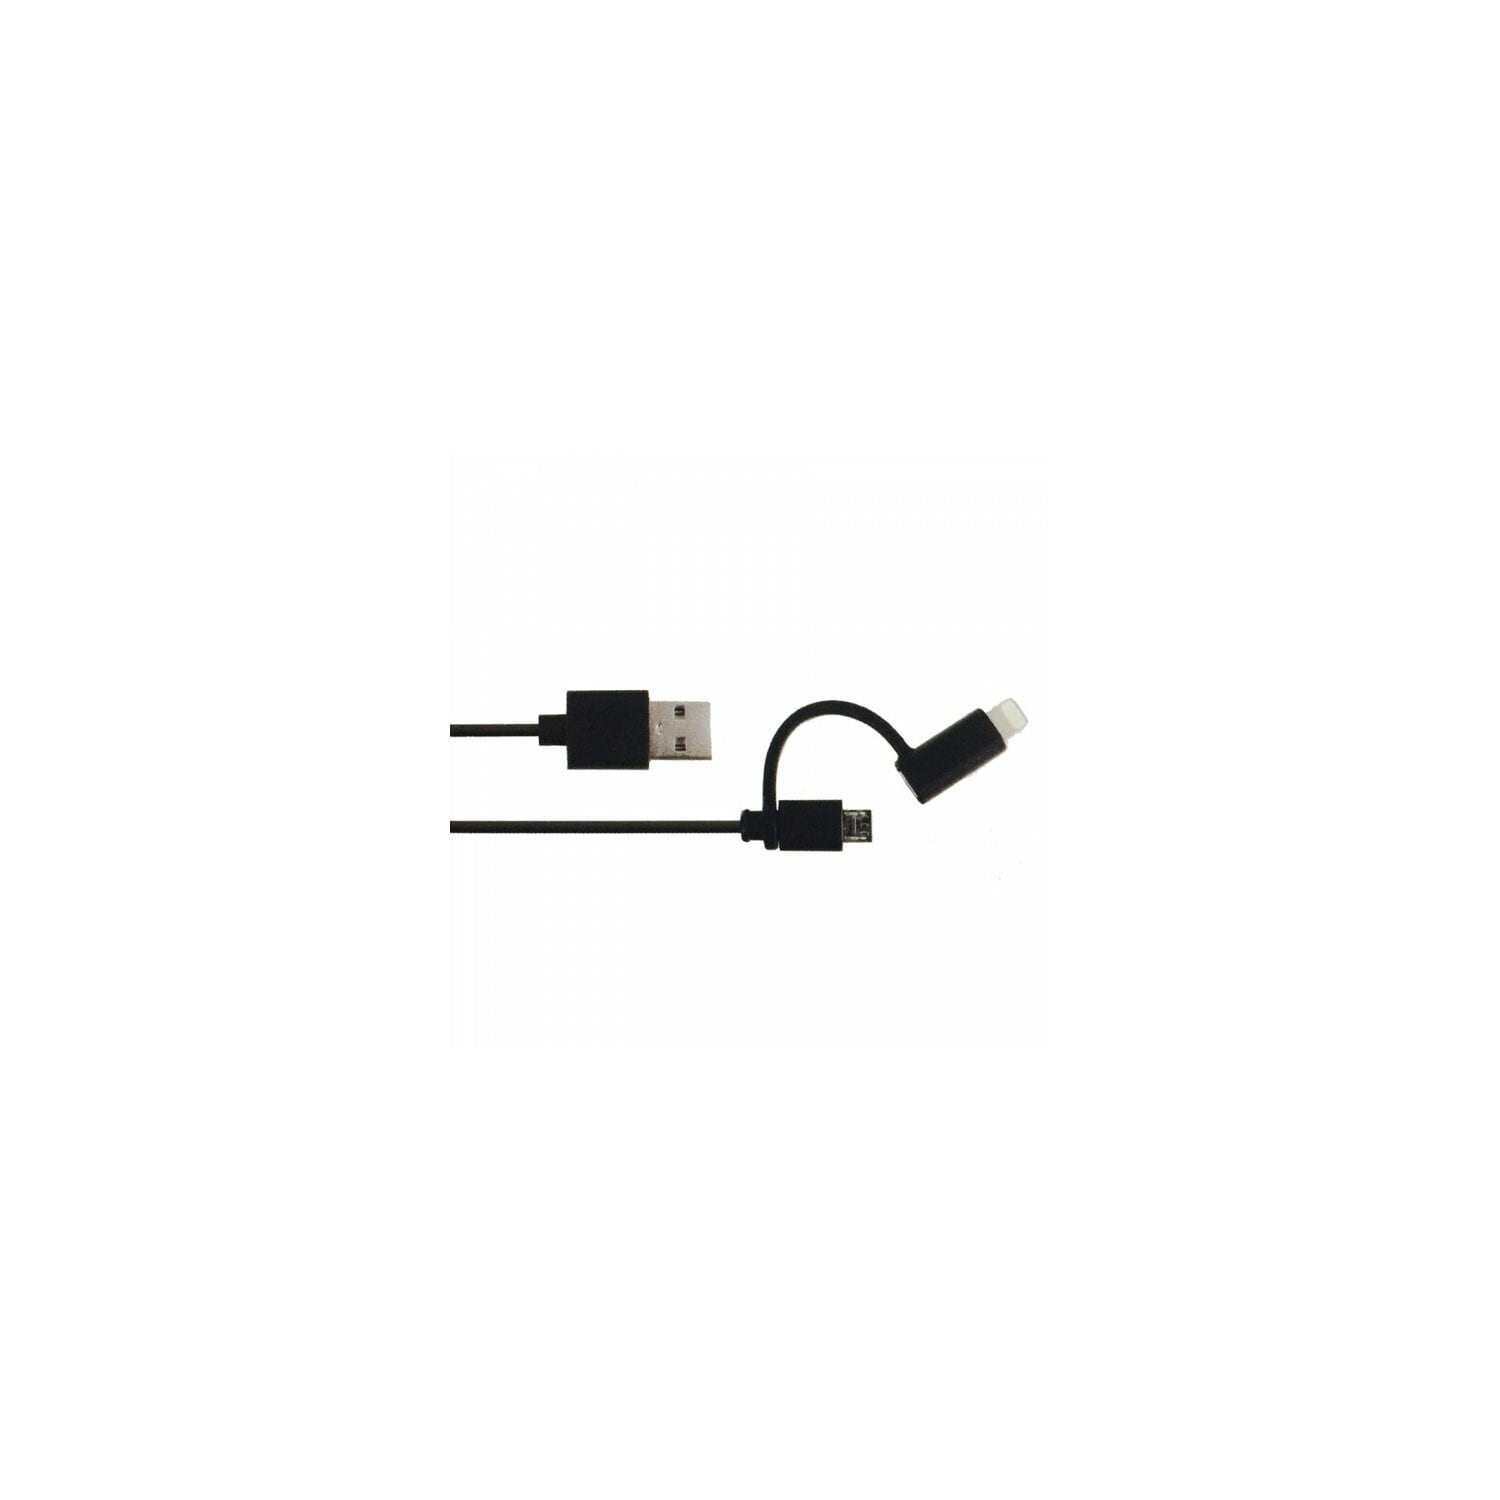 Kabel GP USB - Micro USB Lighting  CB18M-B1 Czarny